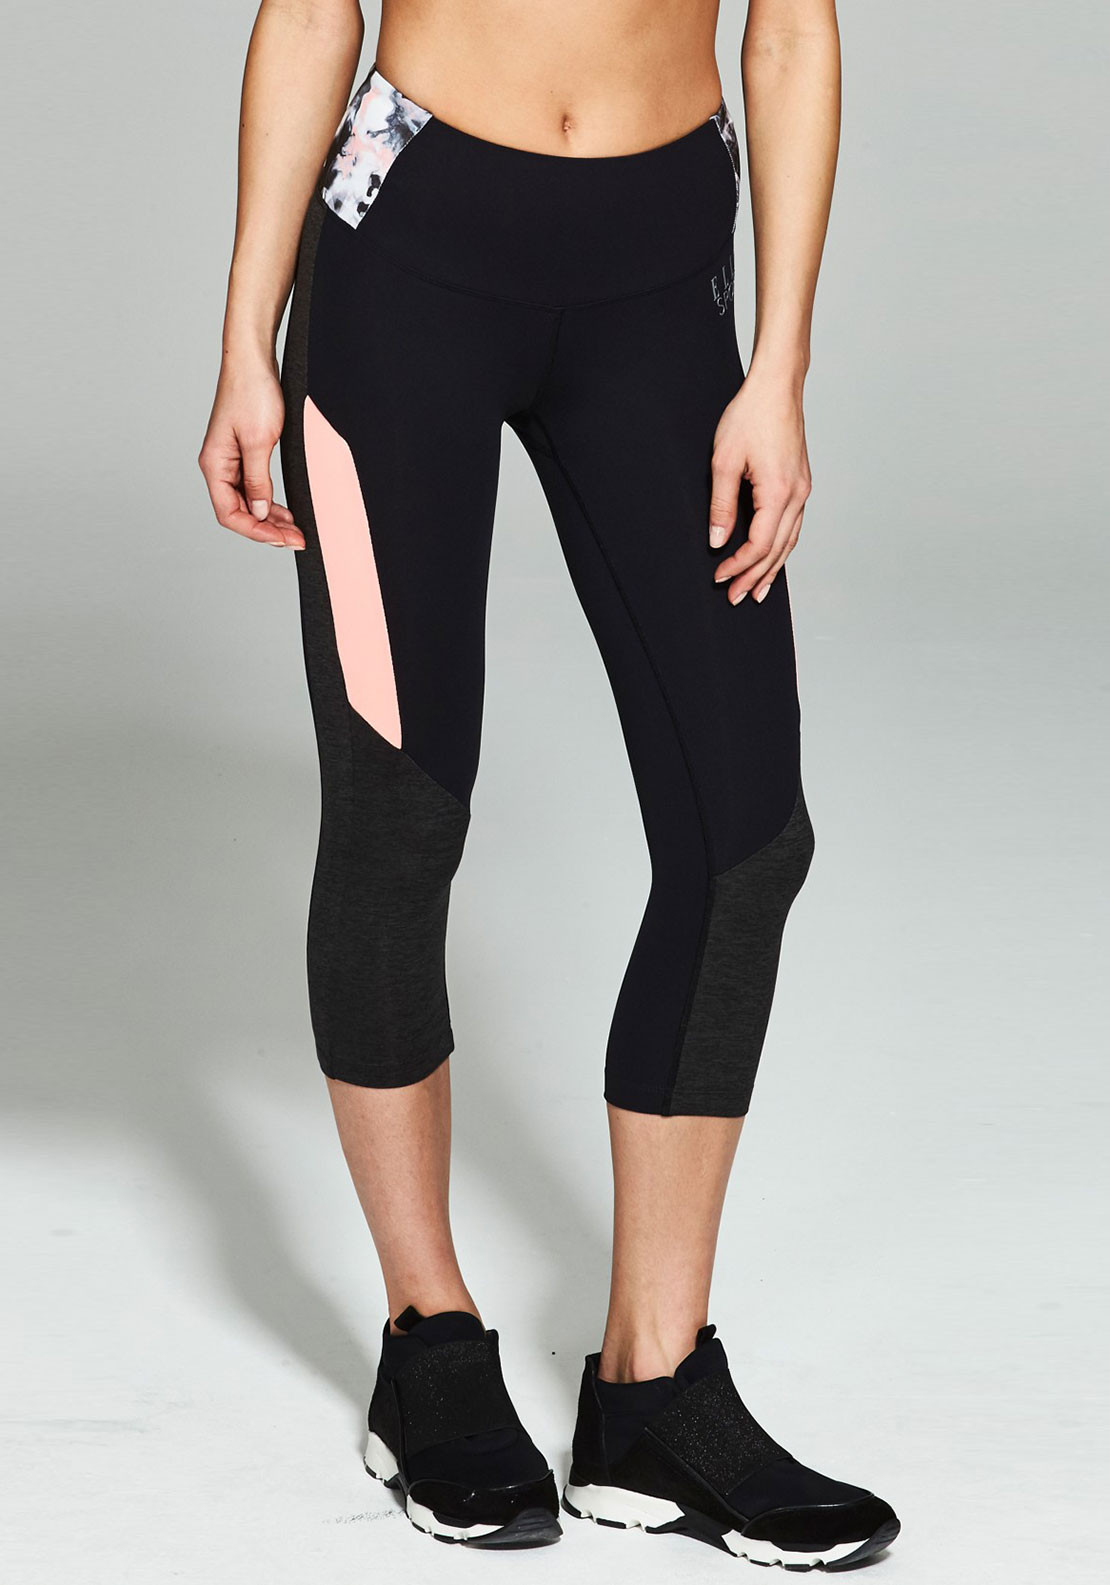 Elle Sport Fortitude Performance Capri, Navy